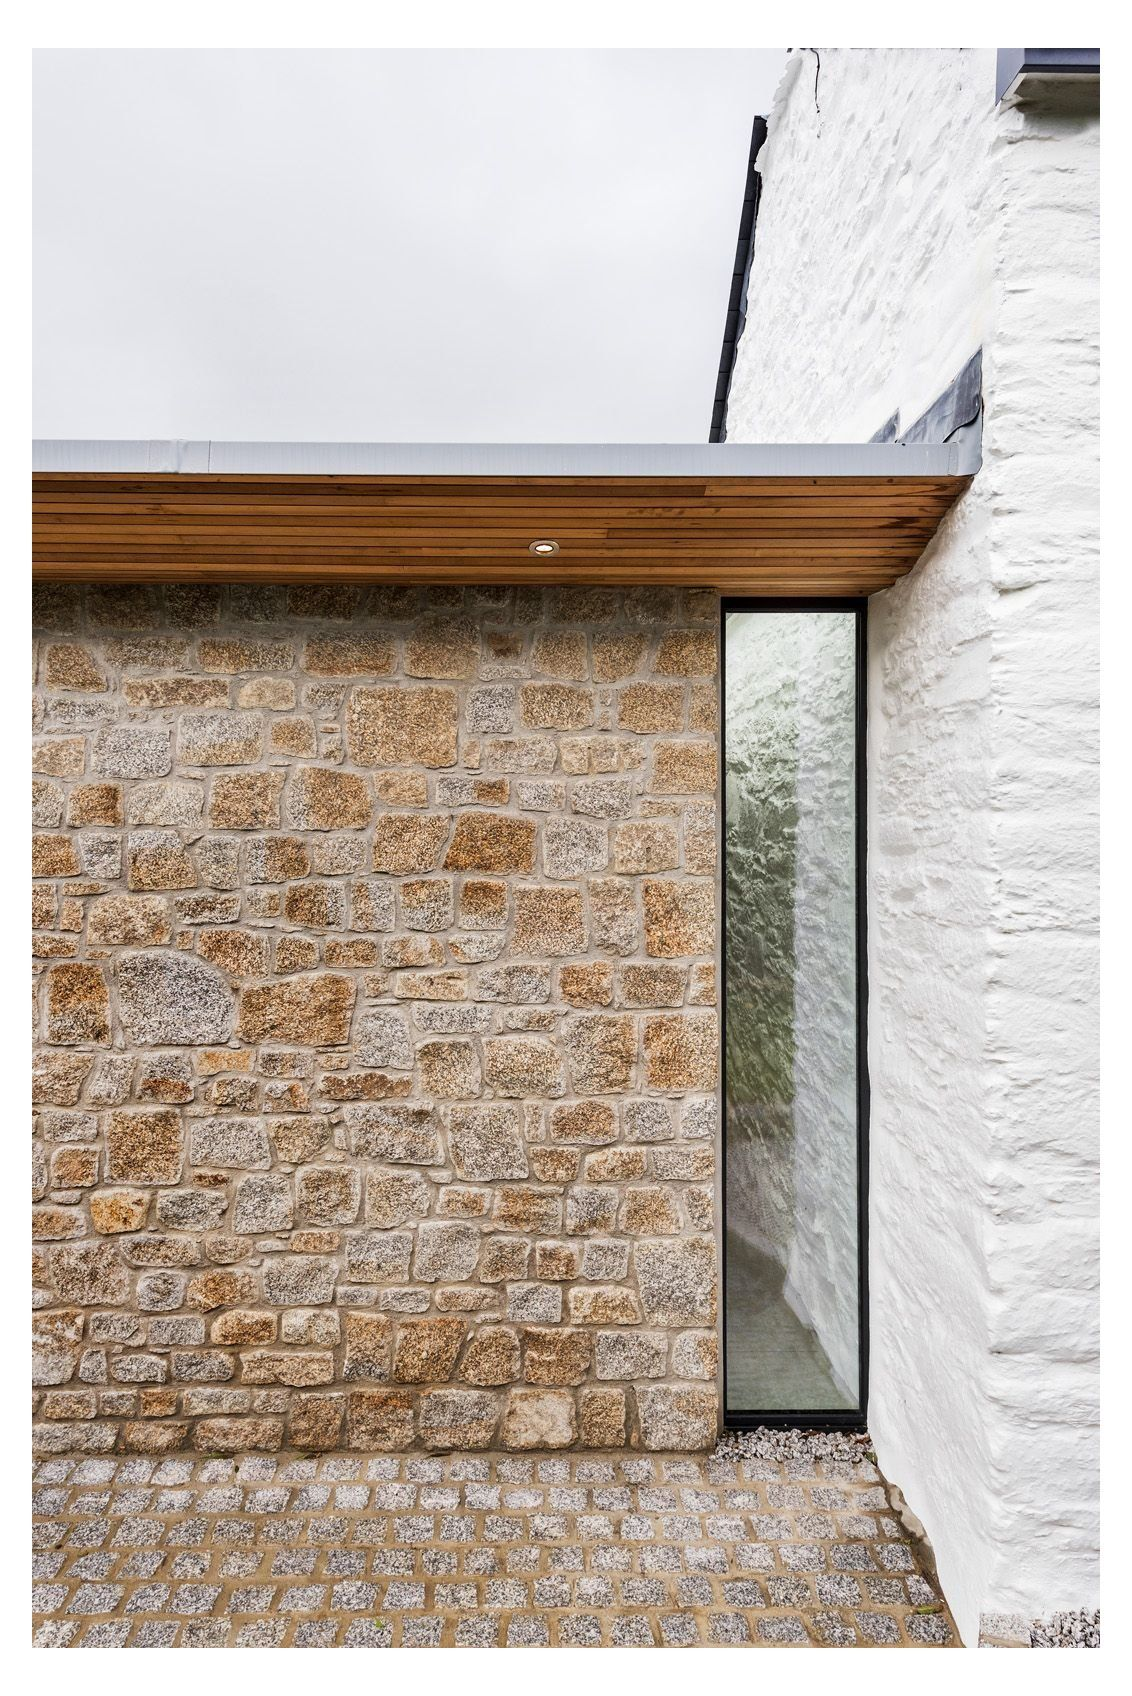 Roseland Cottage Flat Roof Extension Overhang Van Ellen Sheryn Architects Contempory Gla In 2020 Flat Roof Extension House Extension Design Glass Roof Extension